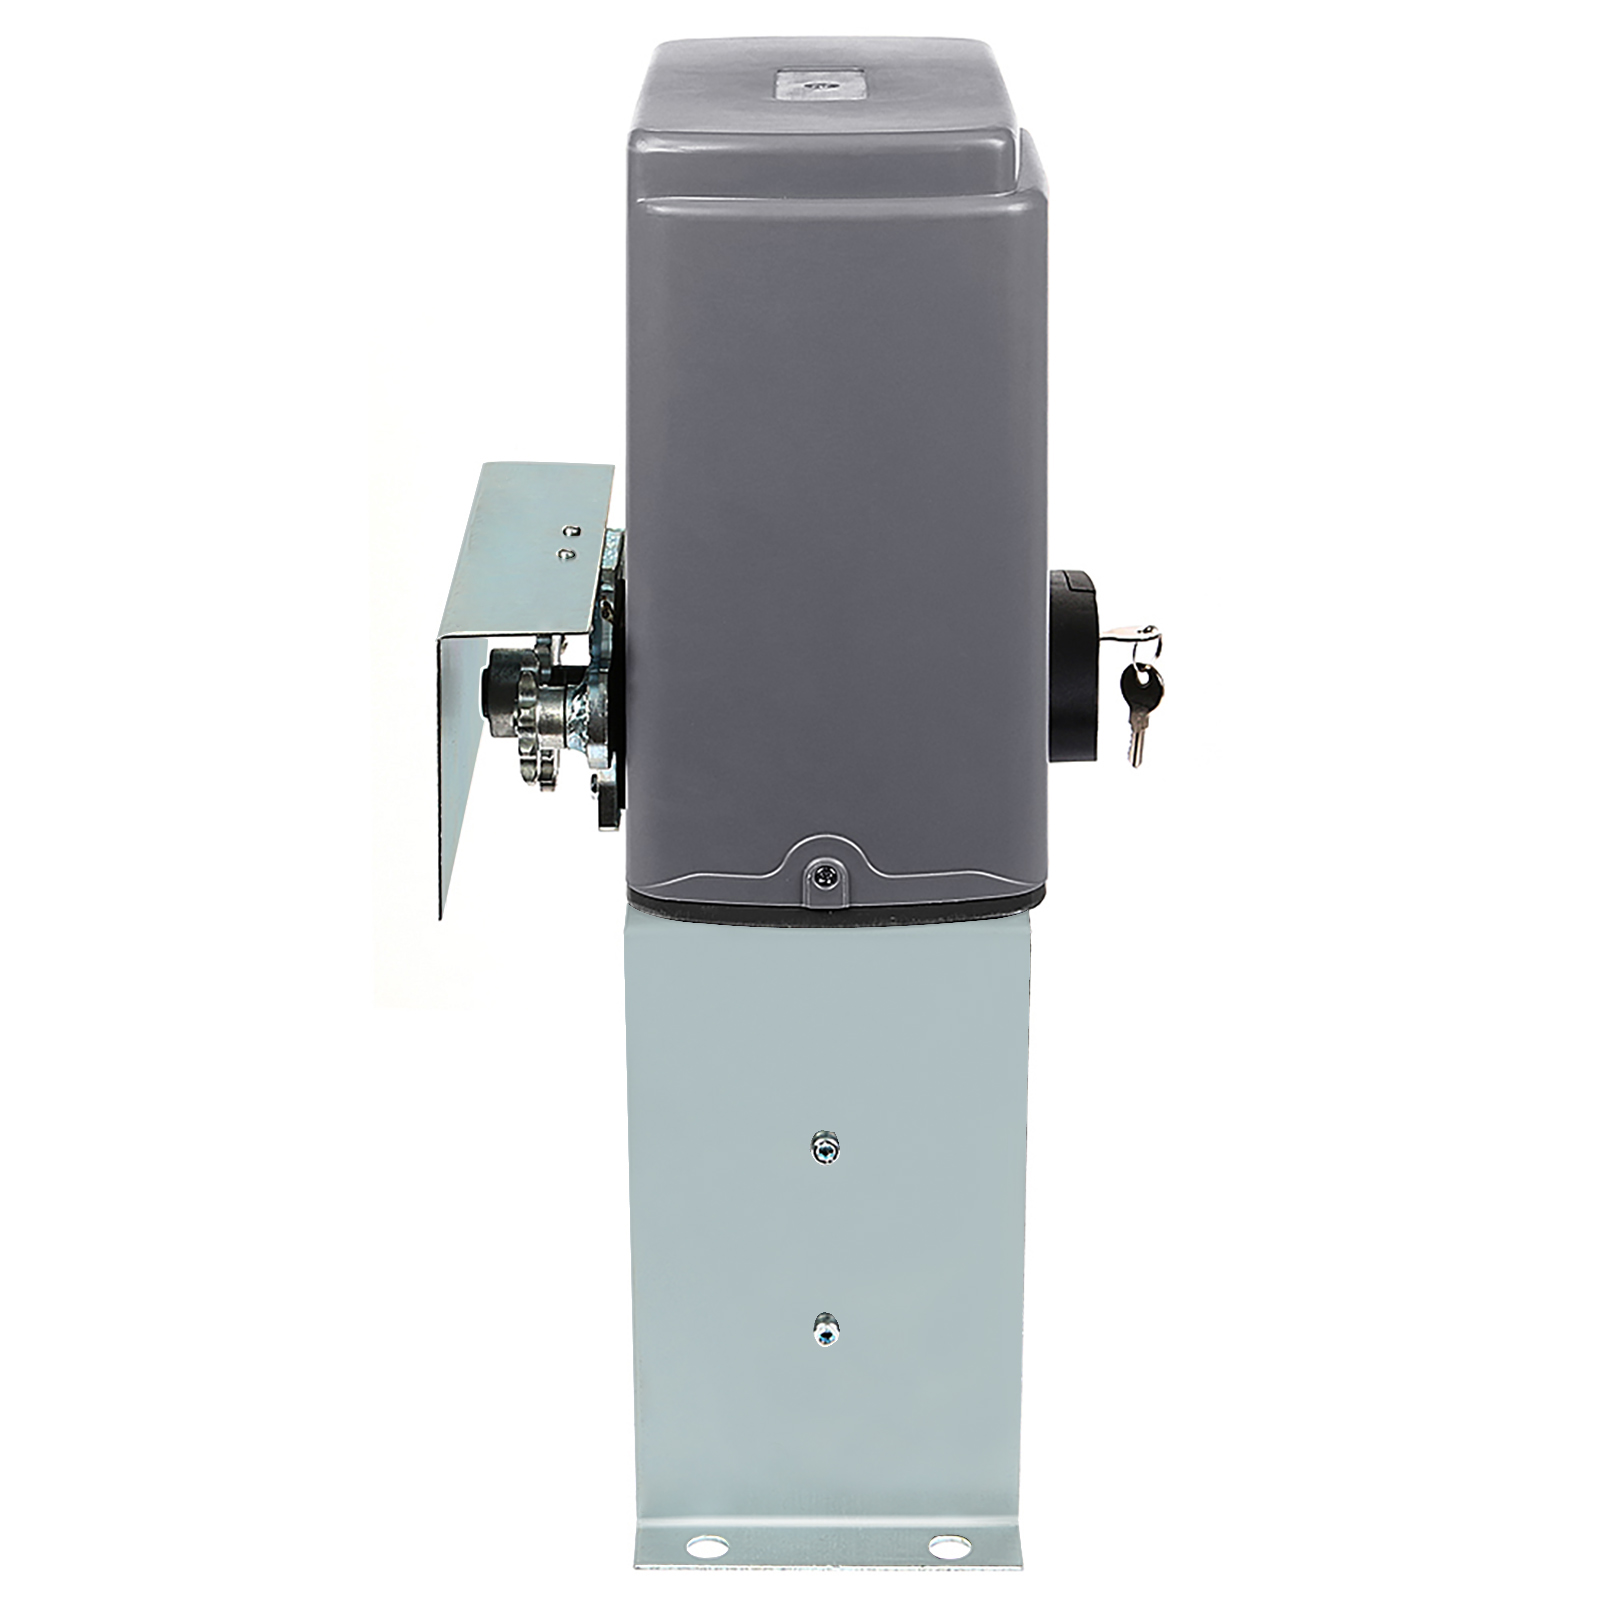 Electric Remote Control Sliding Gate Motor Slide 600kg Automatic Opener Door 895800952297 Ebay